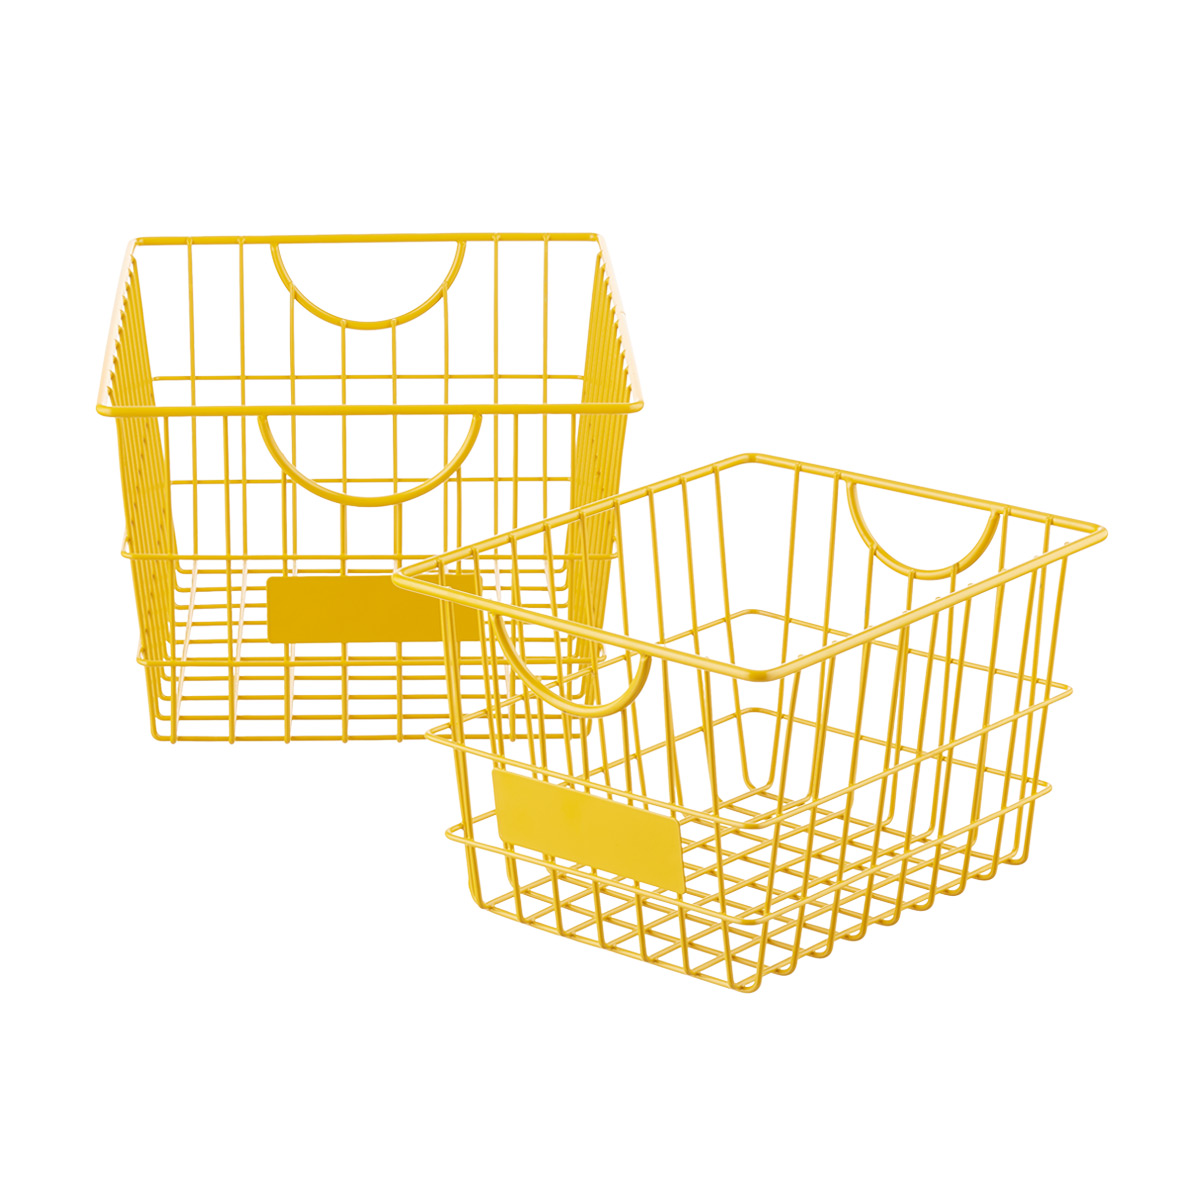 Goldenrod Wire Storage Baskets with Handles